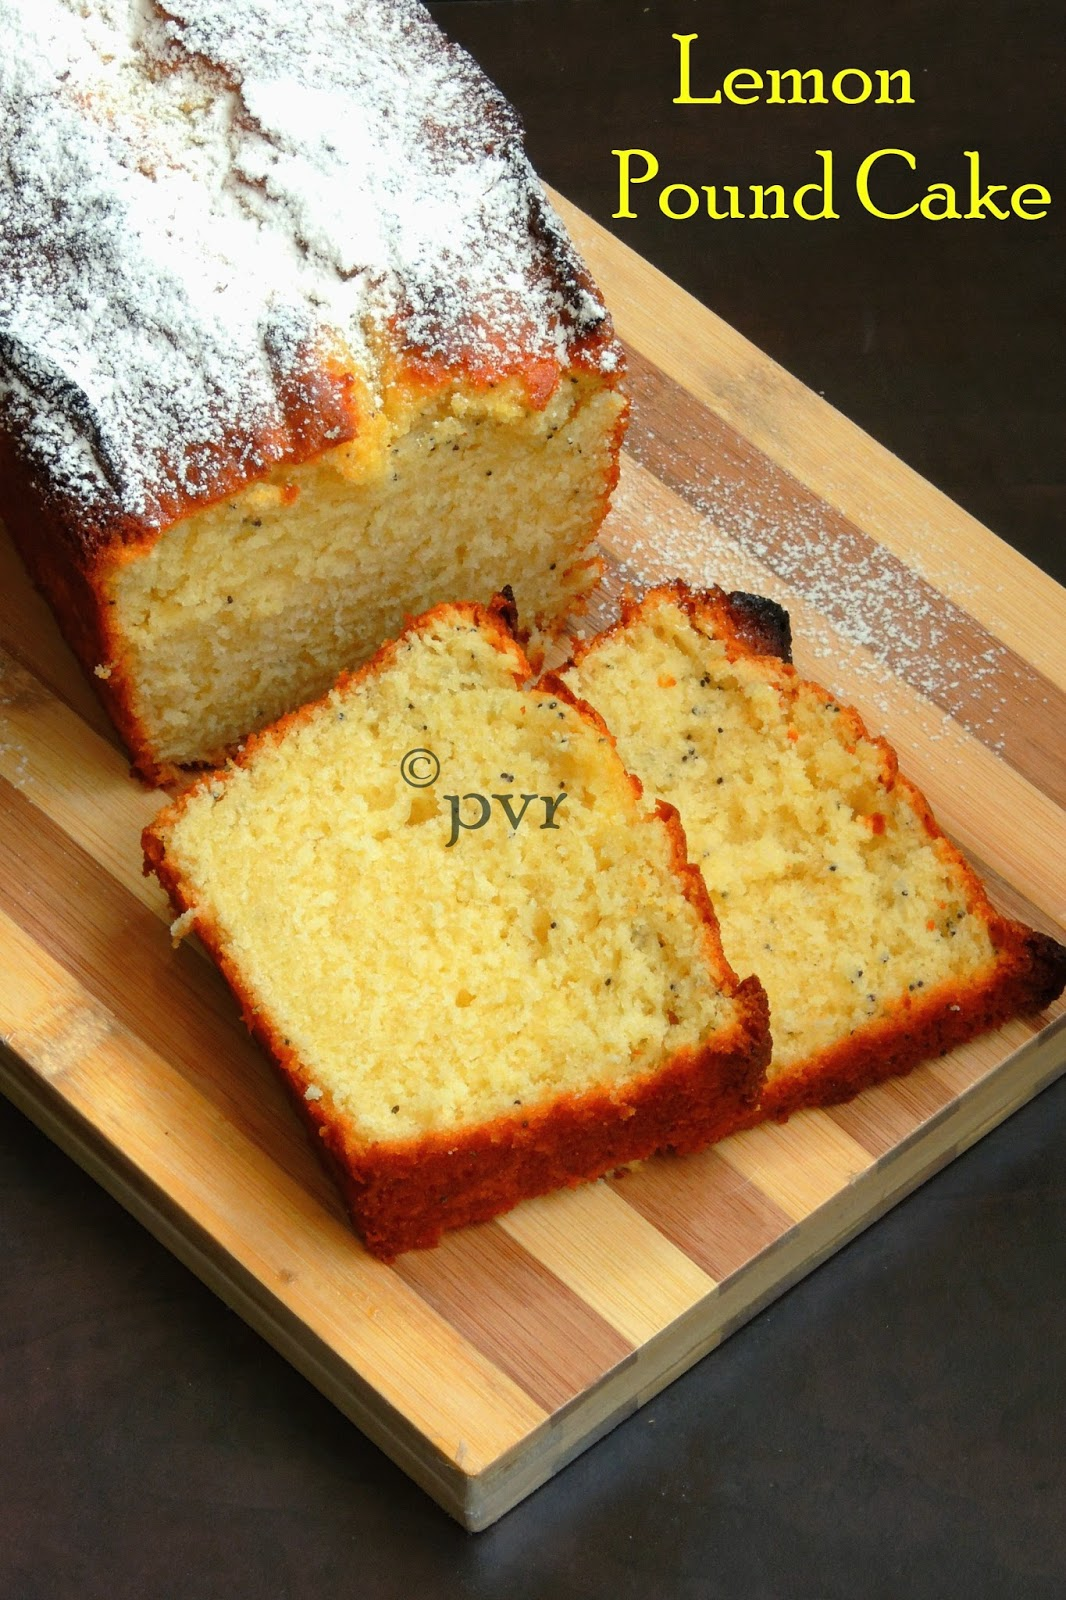 Lemon poppy seeds cake, Lemon Pound cake